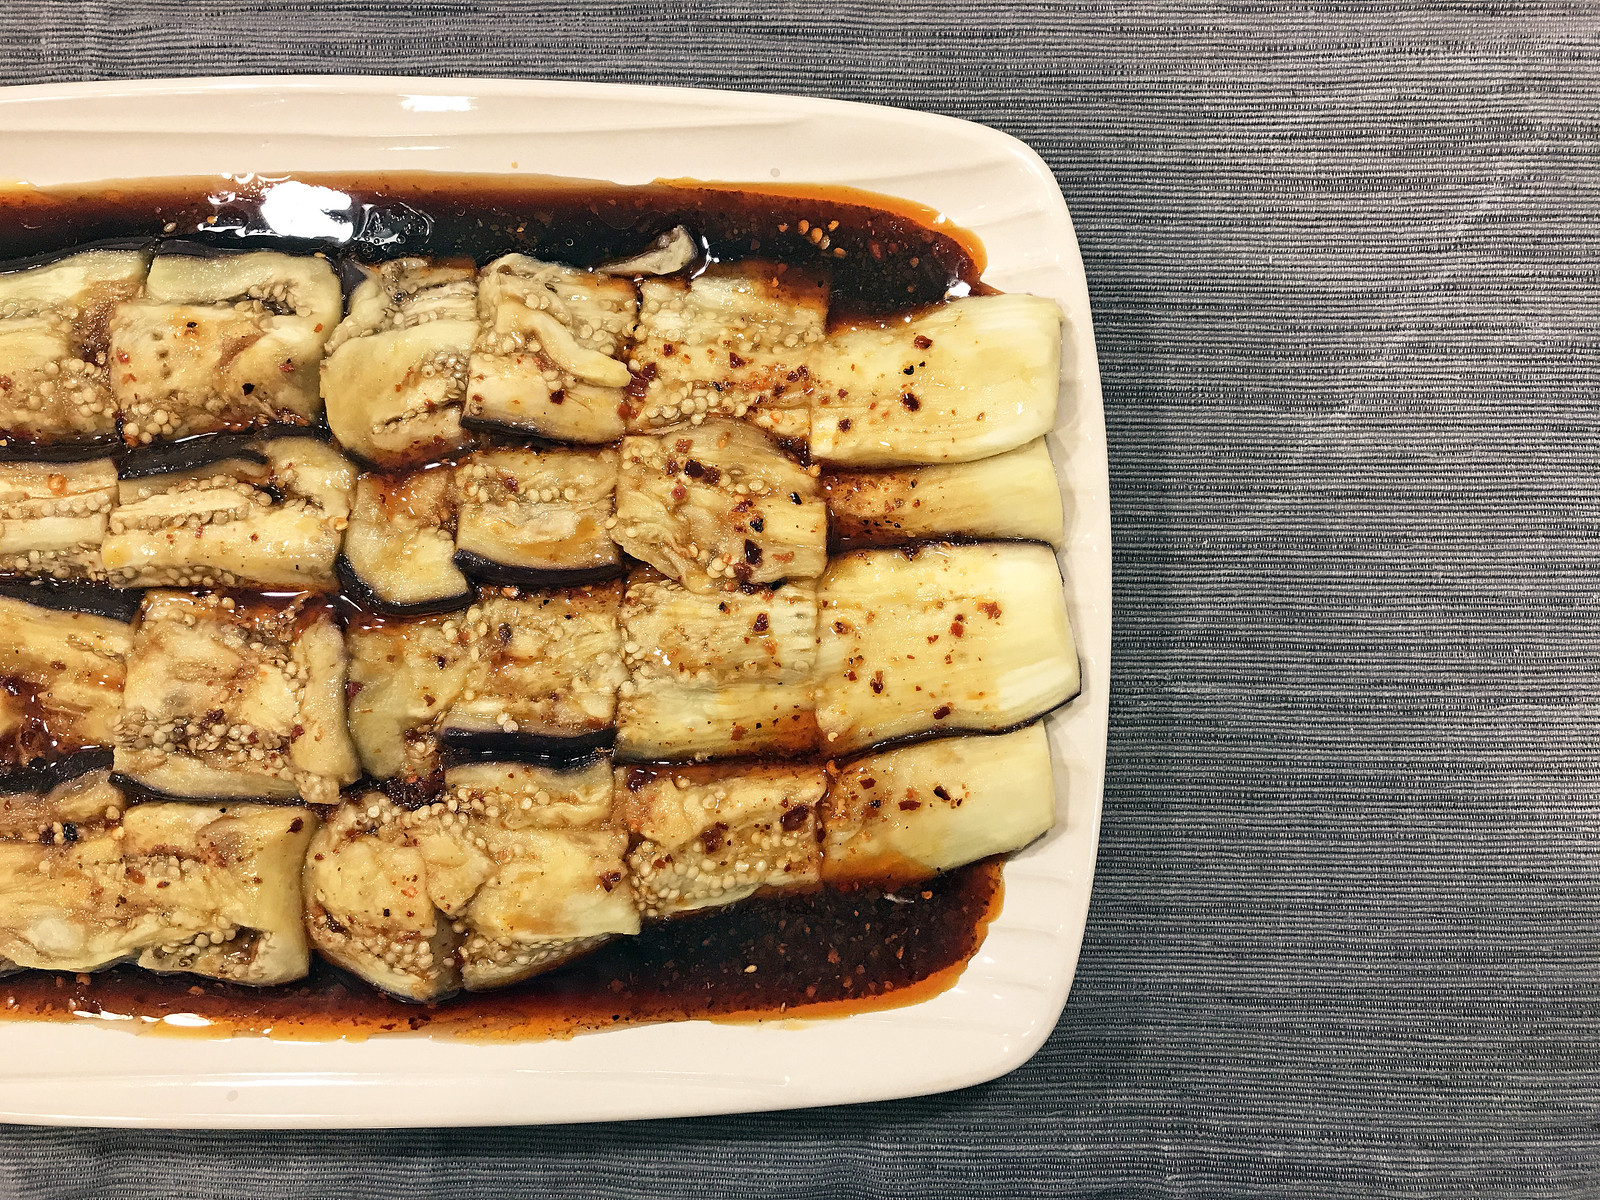 Steamed eggplant with chili sauce